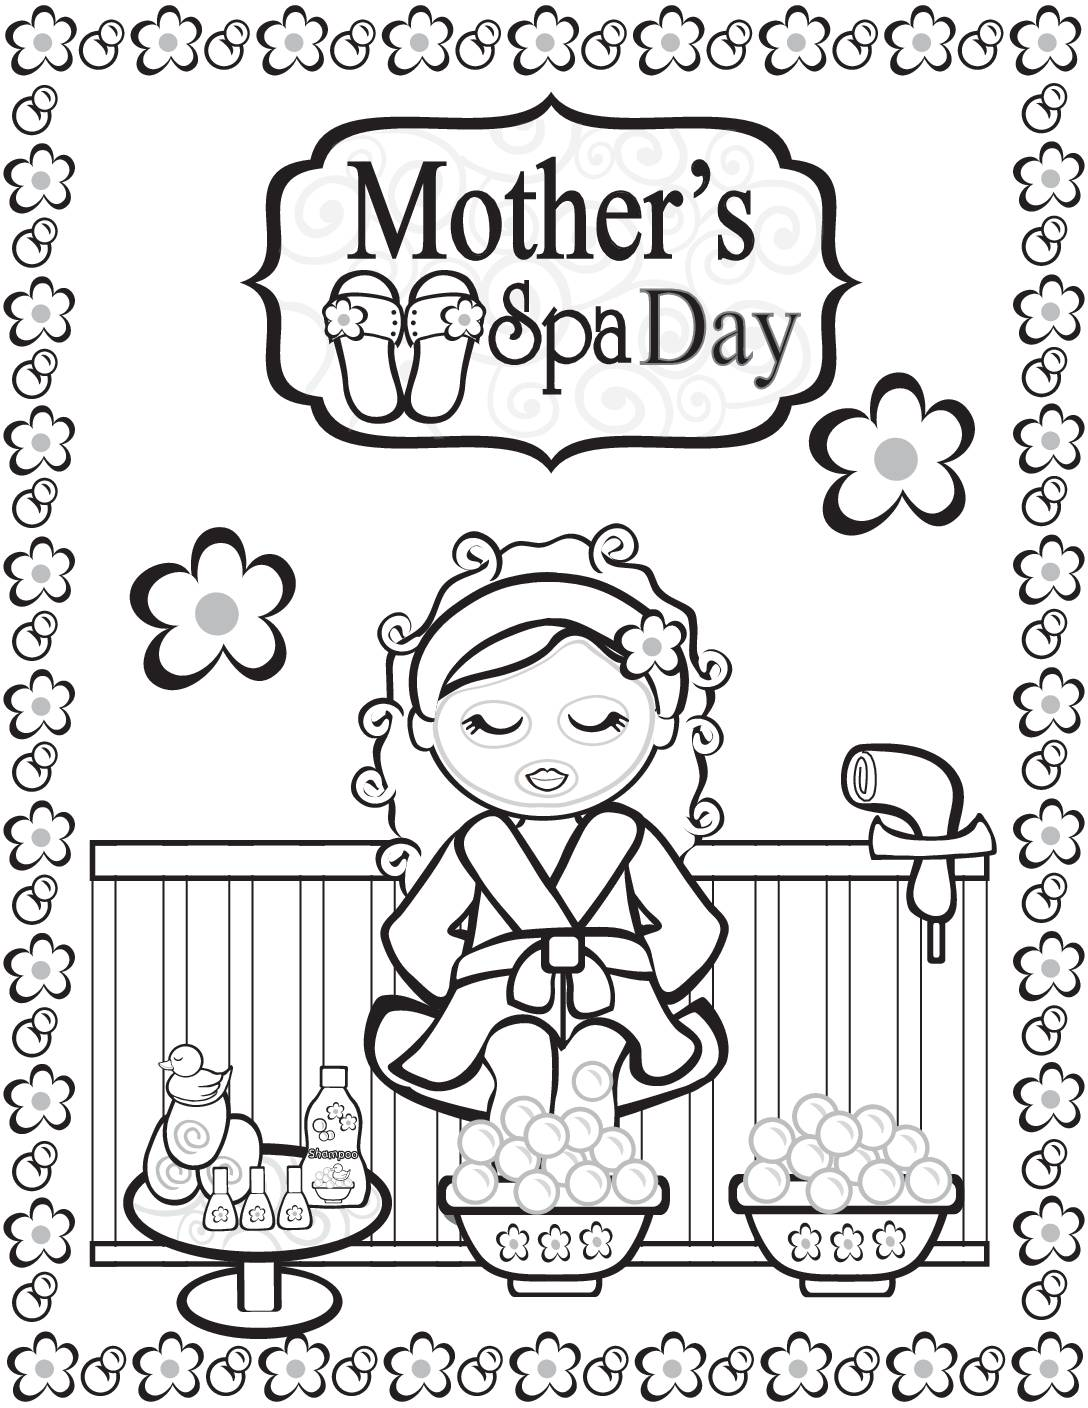 Coloring Page Moms Spa Day